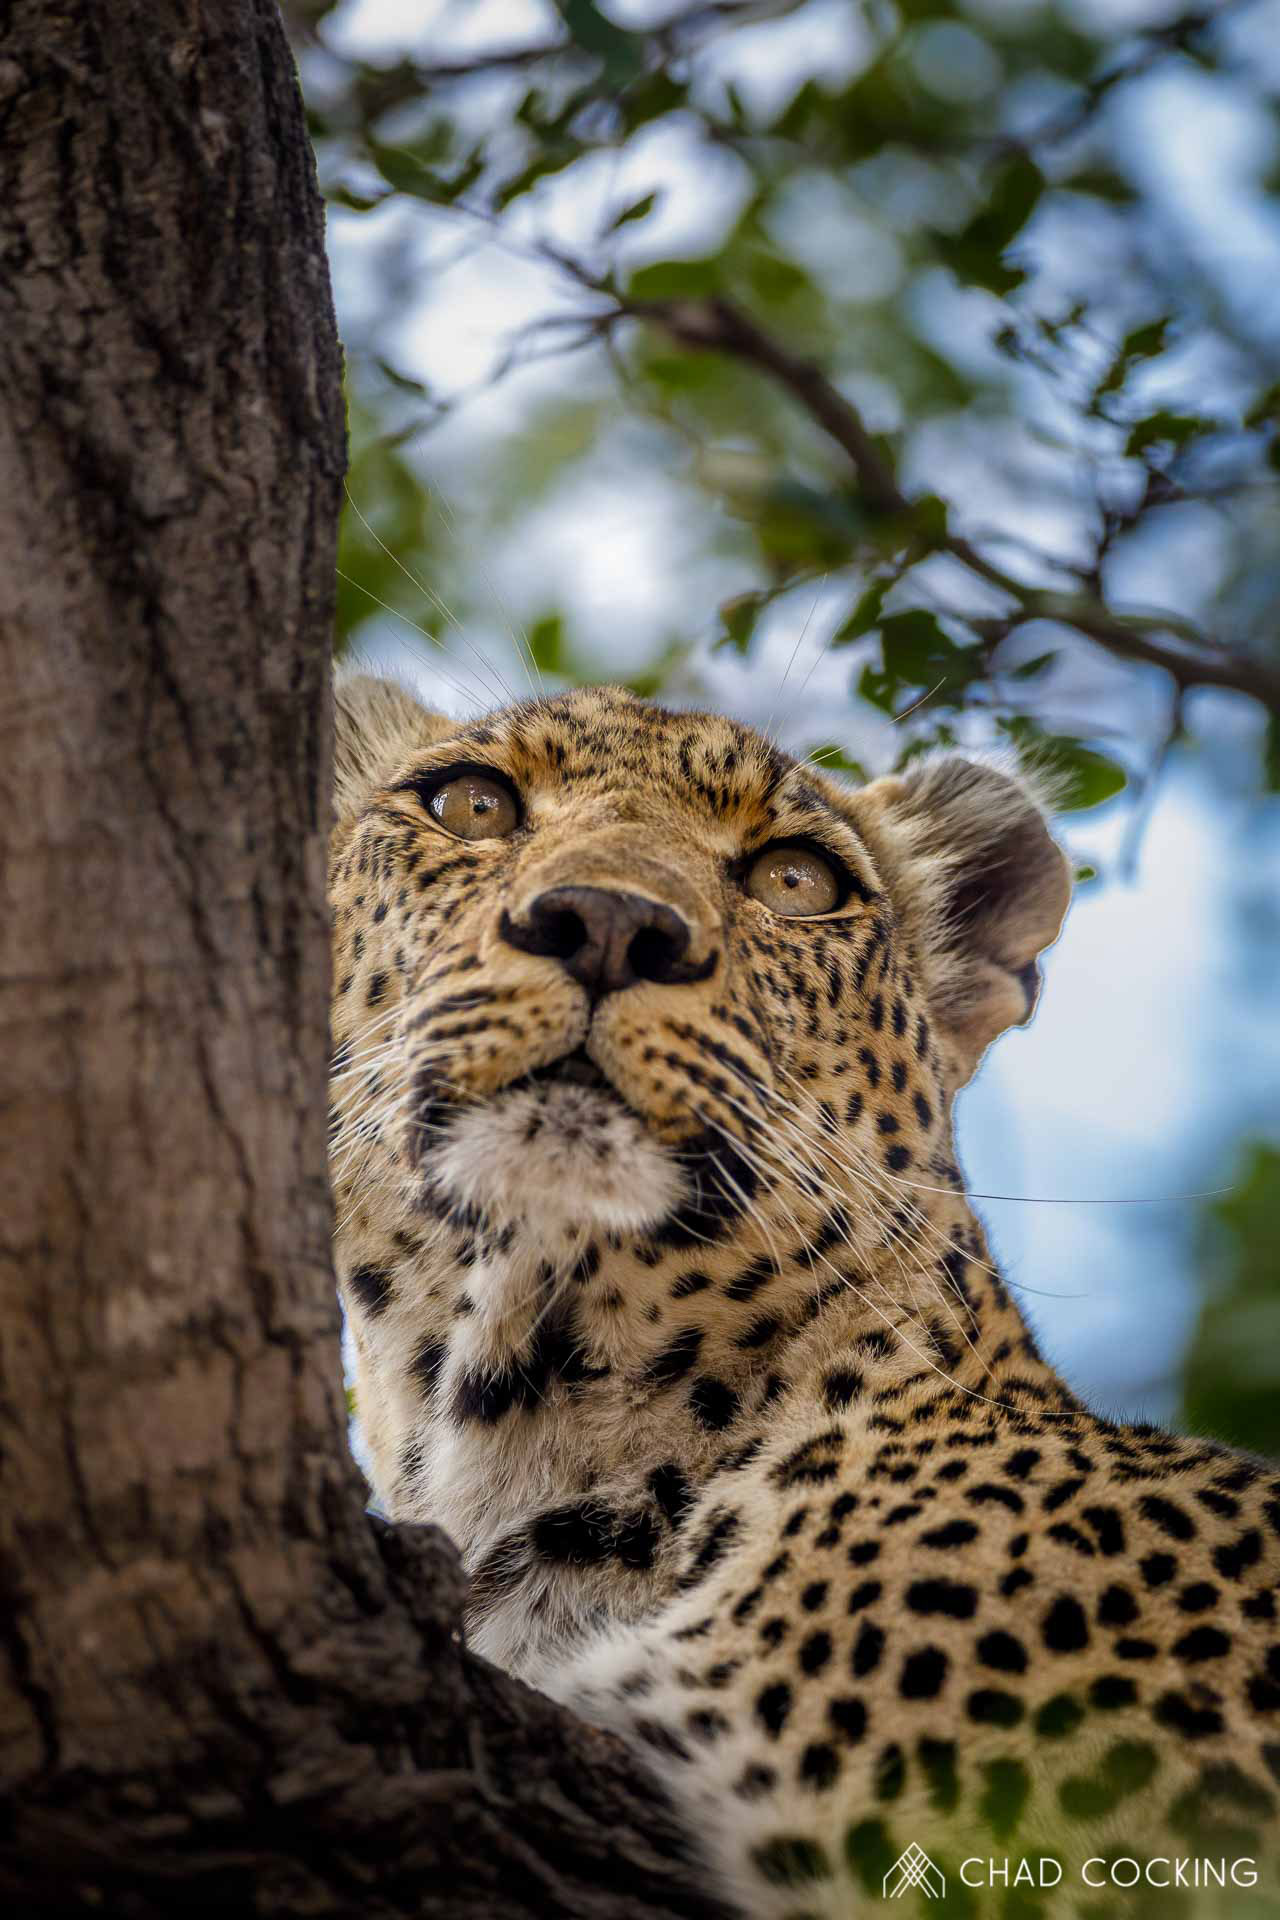 Tanda Tula - Nthombi leopard in the Greater Kruger, South Africa